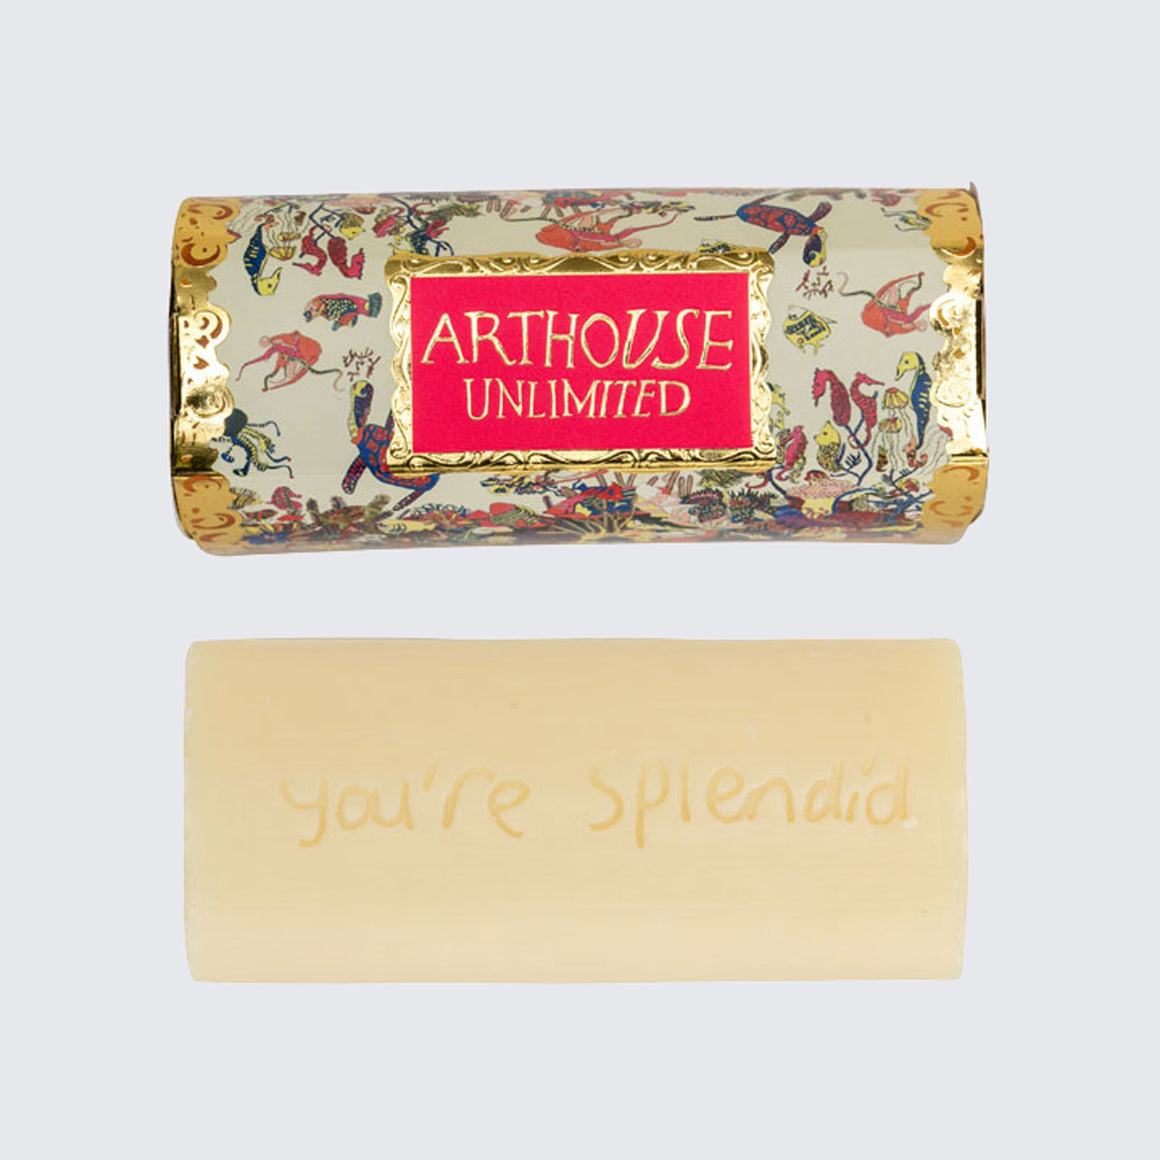 ARTHOUSE Unlimited Tubular Organic Soap Angels of the Deep 'Lavender and Citrus'